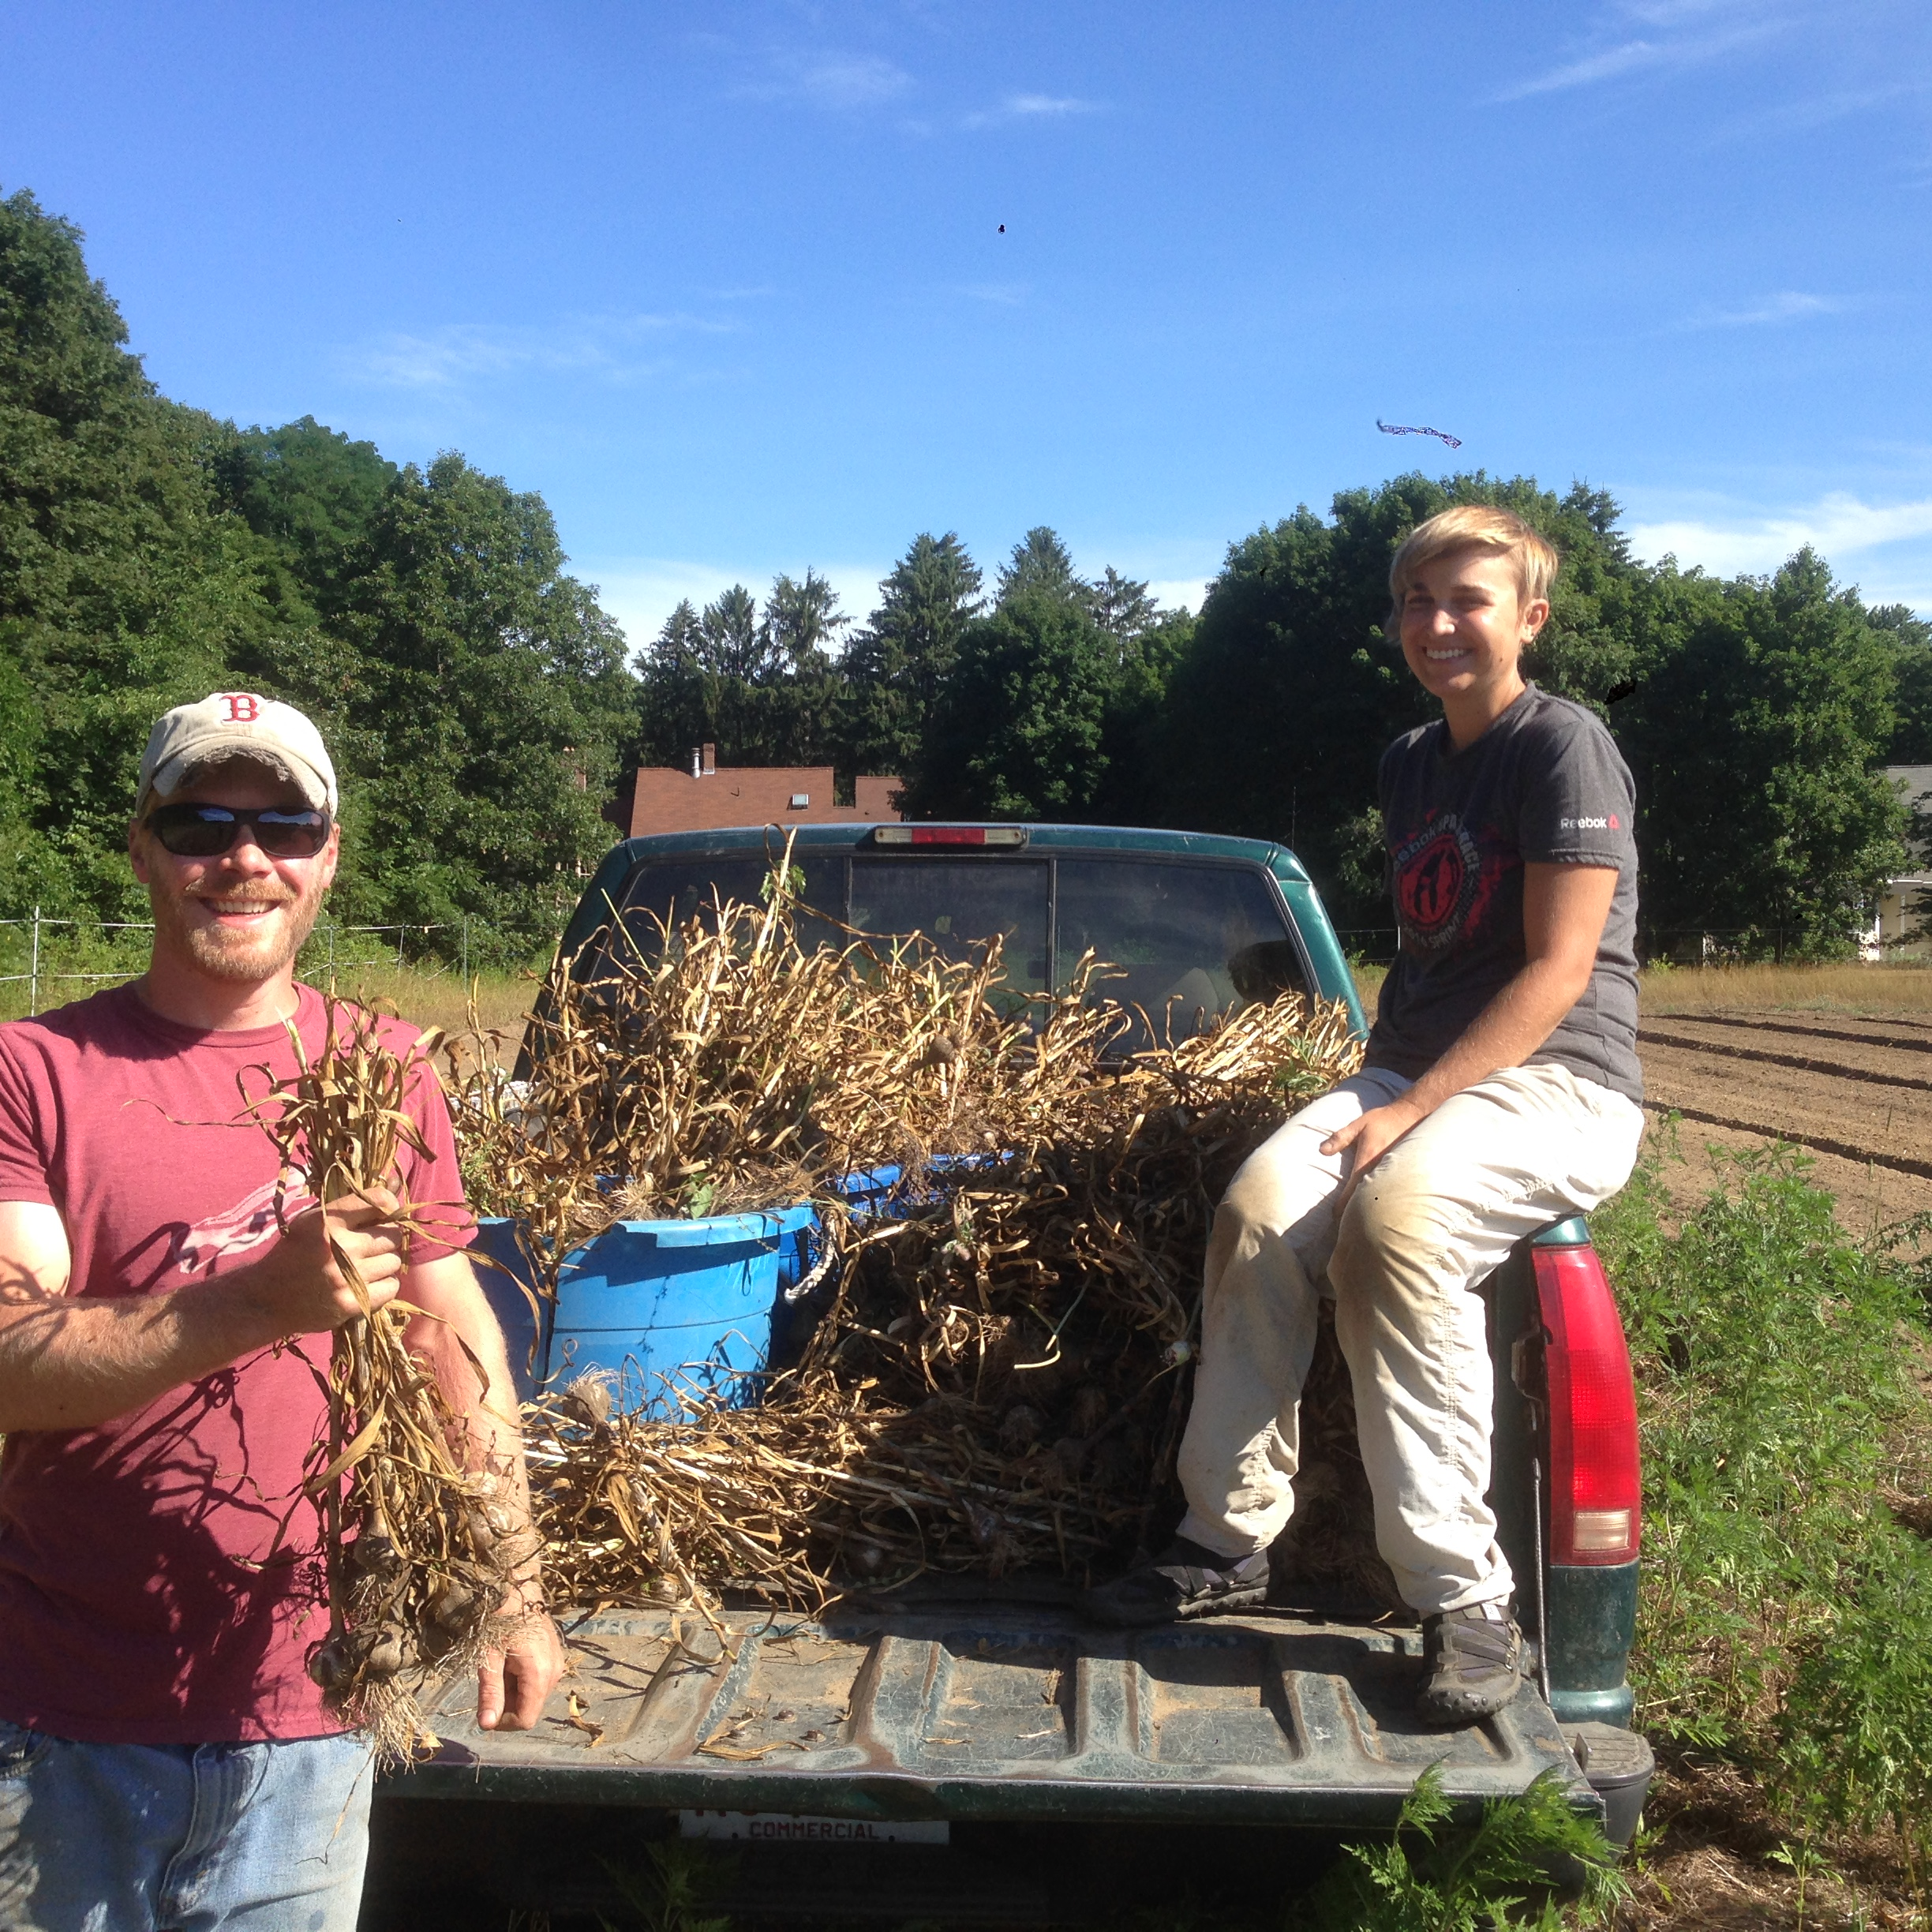 Ethan and Wyatt bringing in the last of the garlic harvest this July.